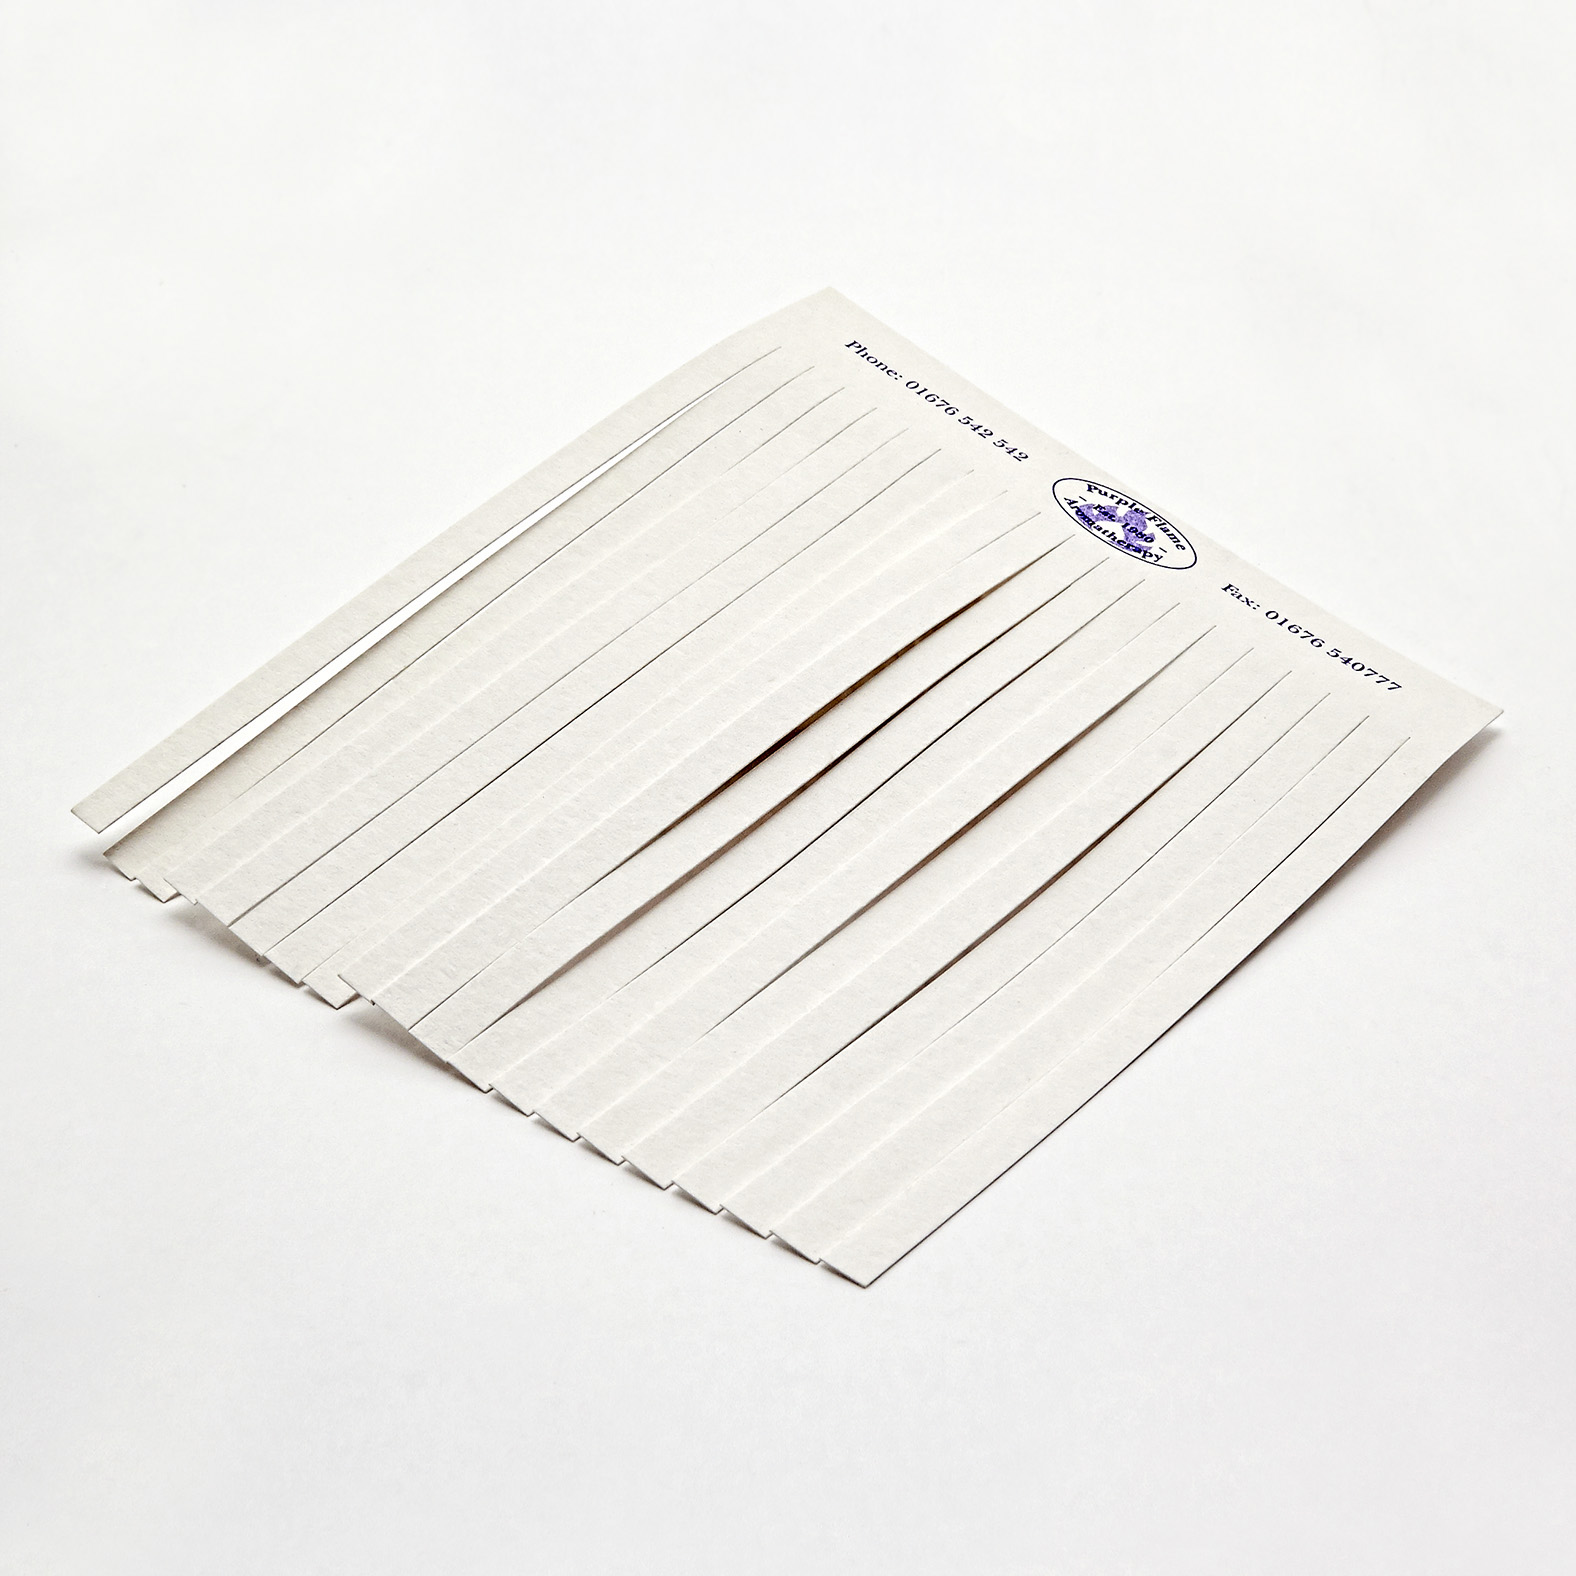 Perfume Tester Strips Uk: Smelling Strips/Tapers